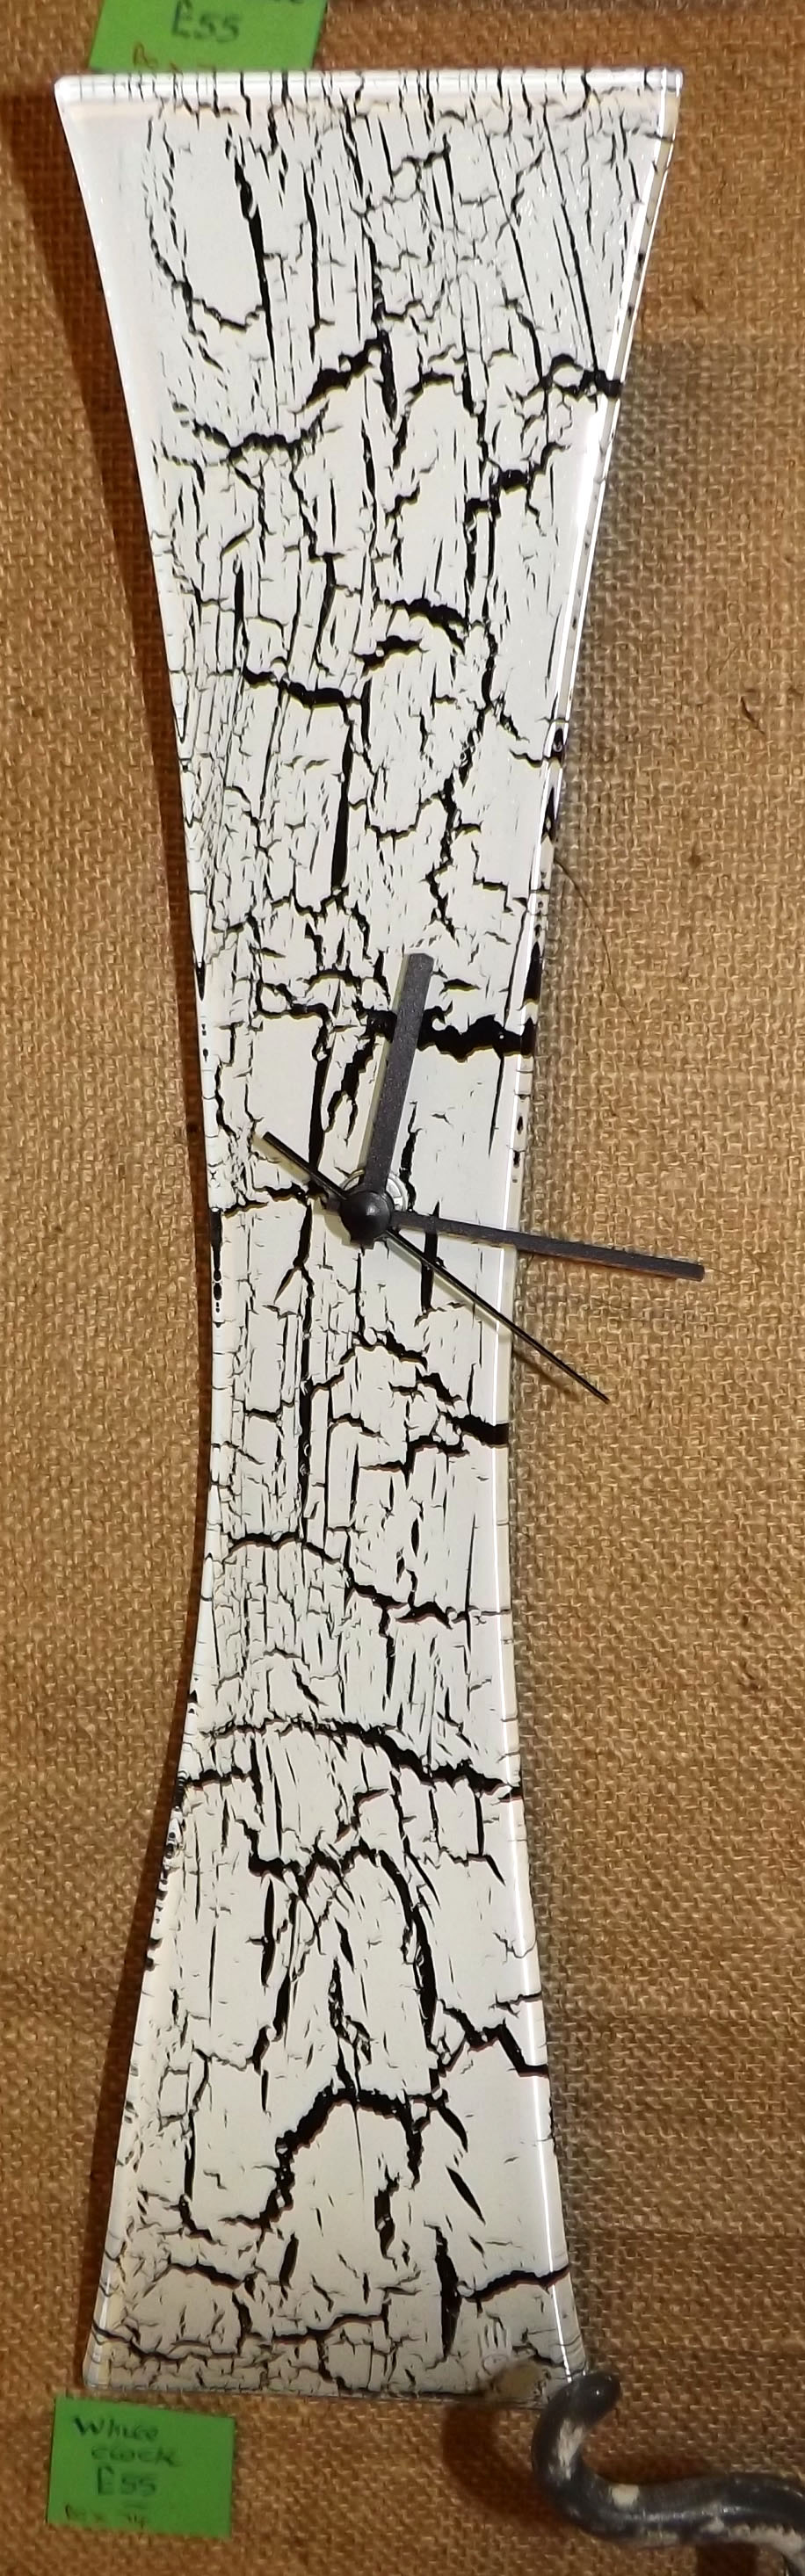 White clock with black crackles